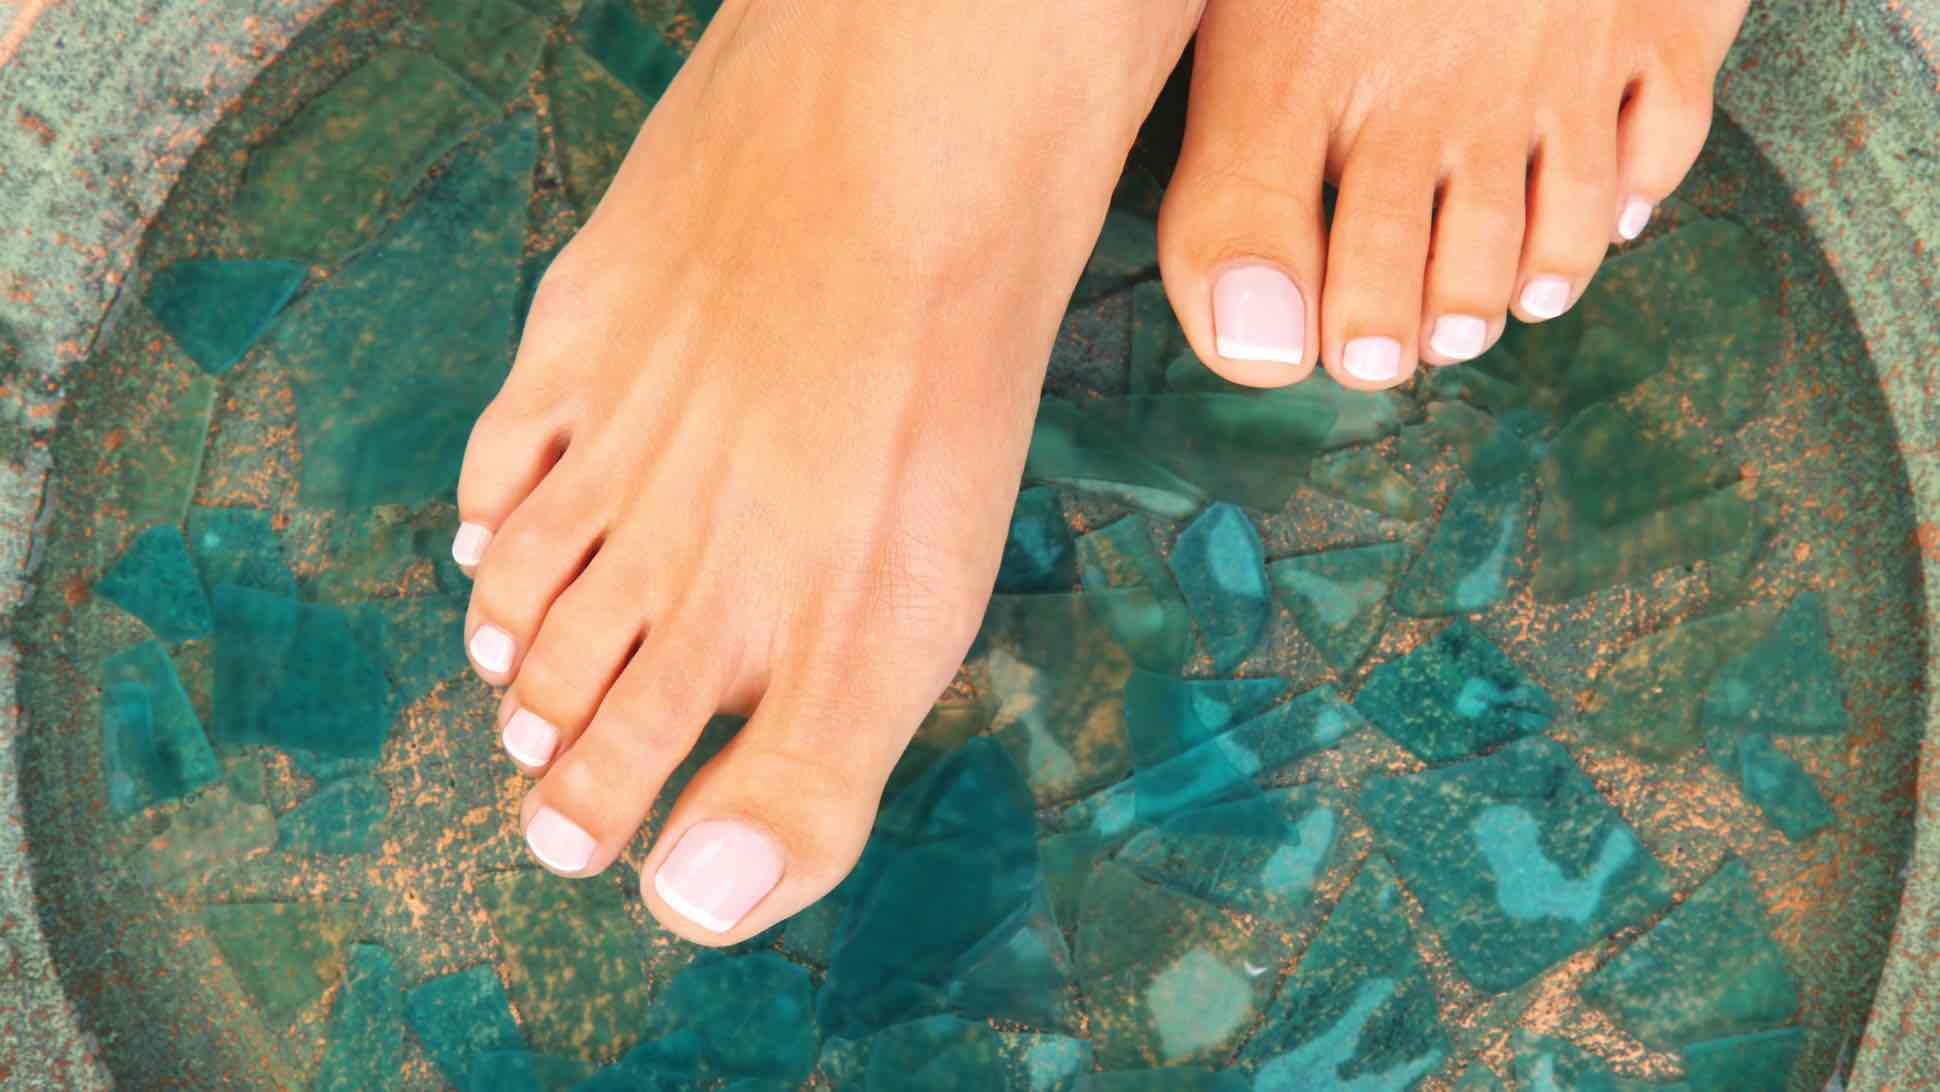 Image of toes preparing for a pedicure